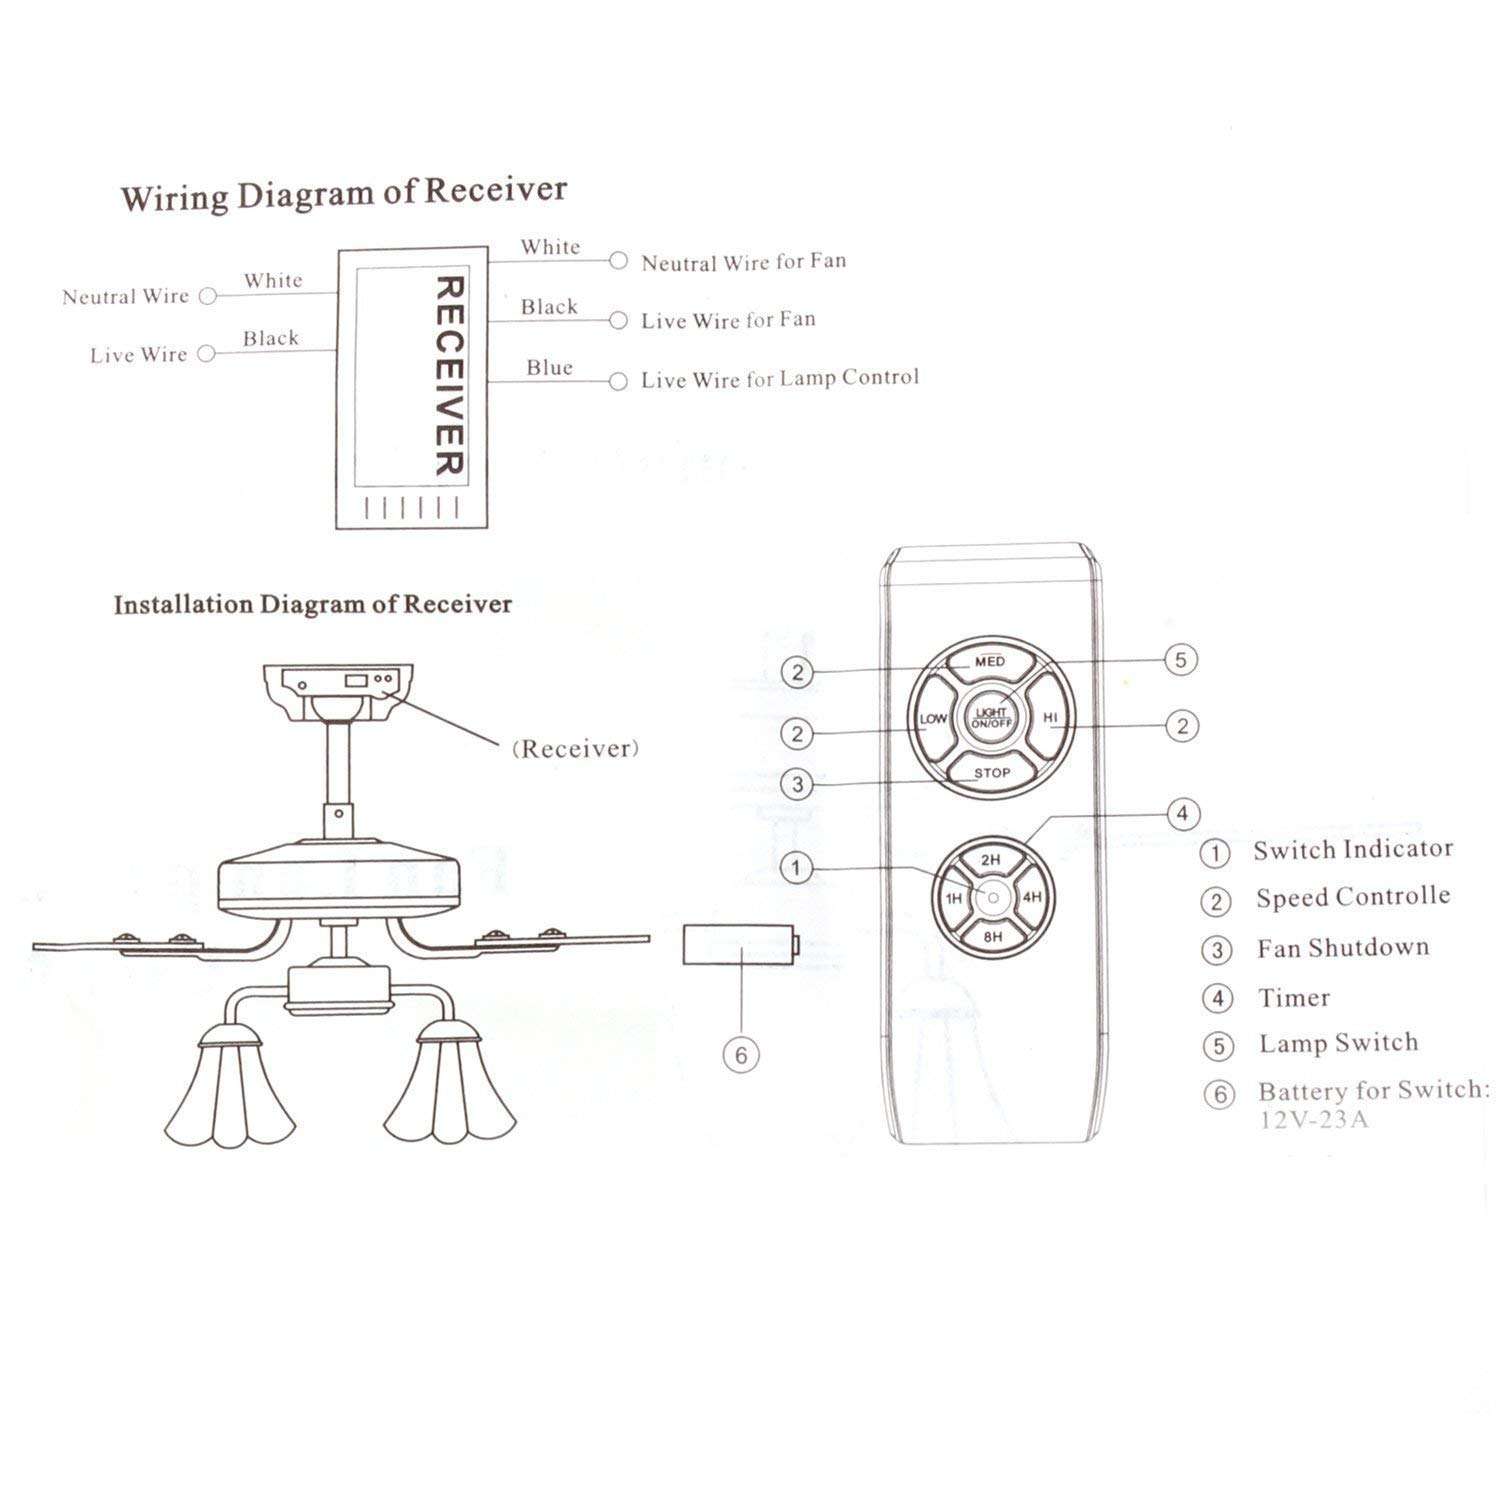 Pecham Universal Lamp Kit Timing Wireless Remote Control For Stage Sound Wiring Diagram Ceiling Fan Scope Of Application Home Office Hotel The Club Display Hall Restaurant